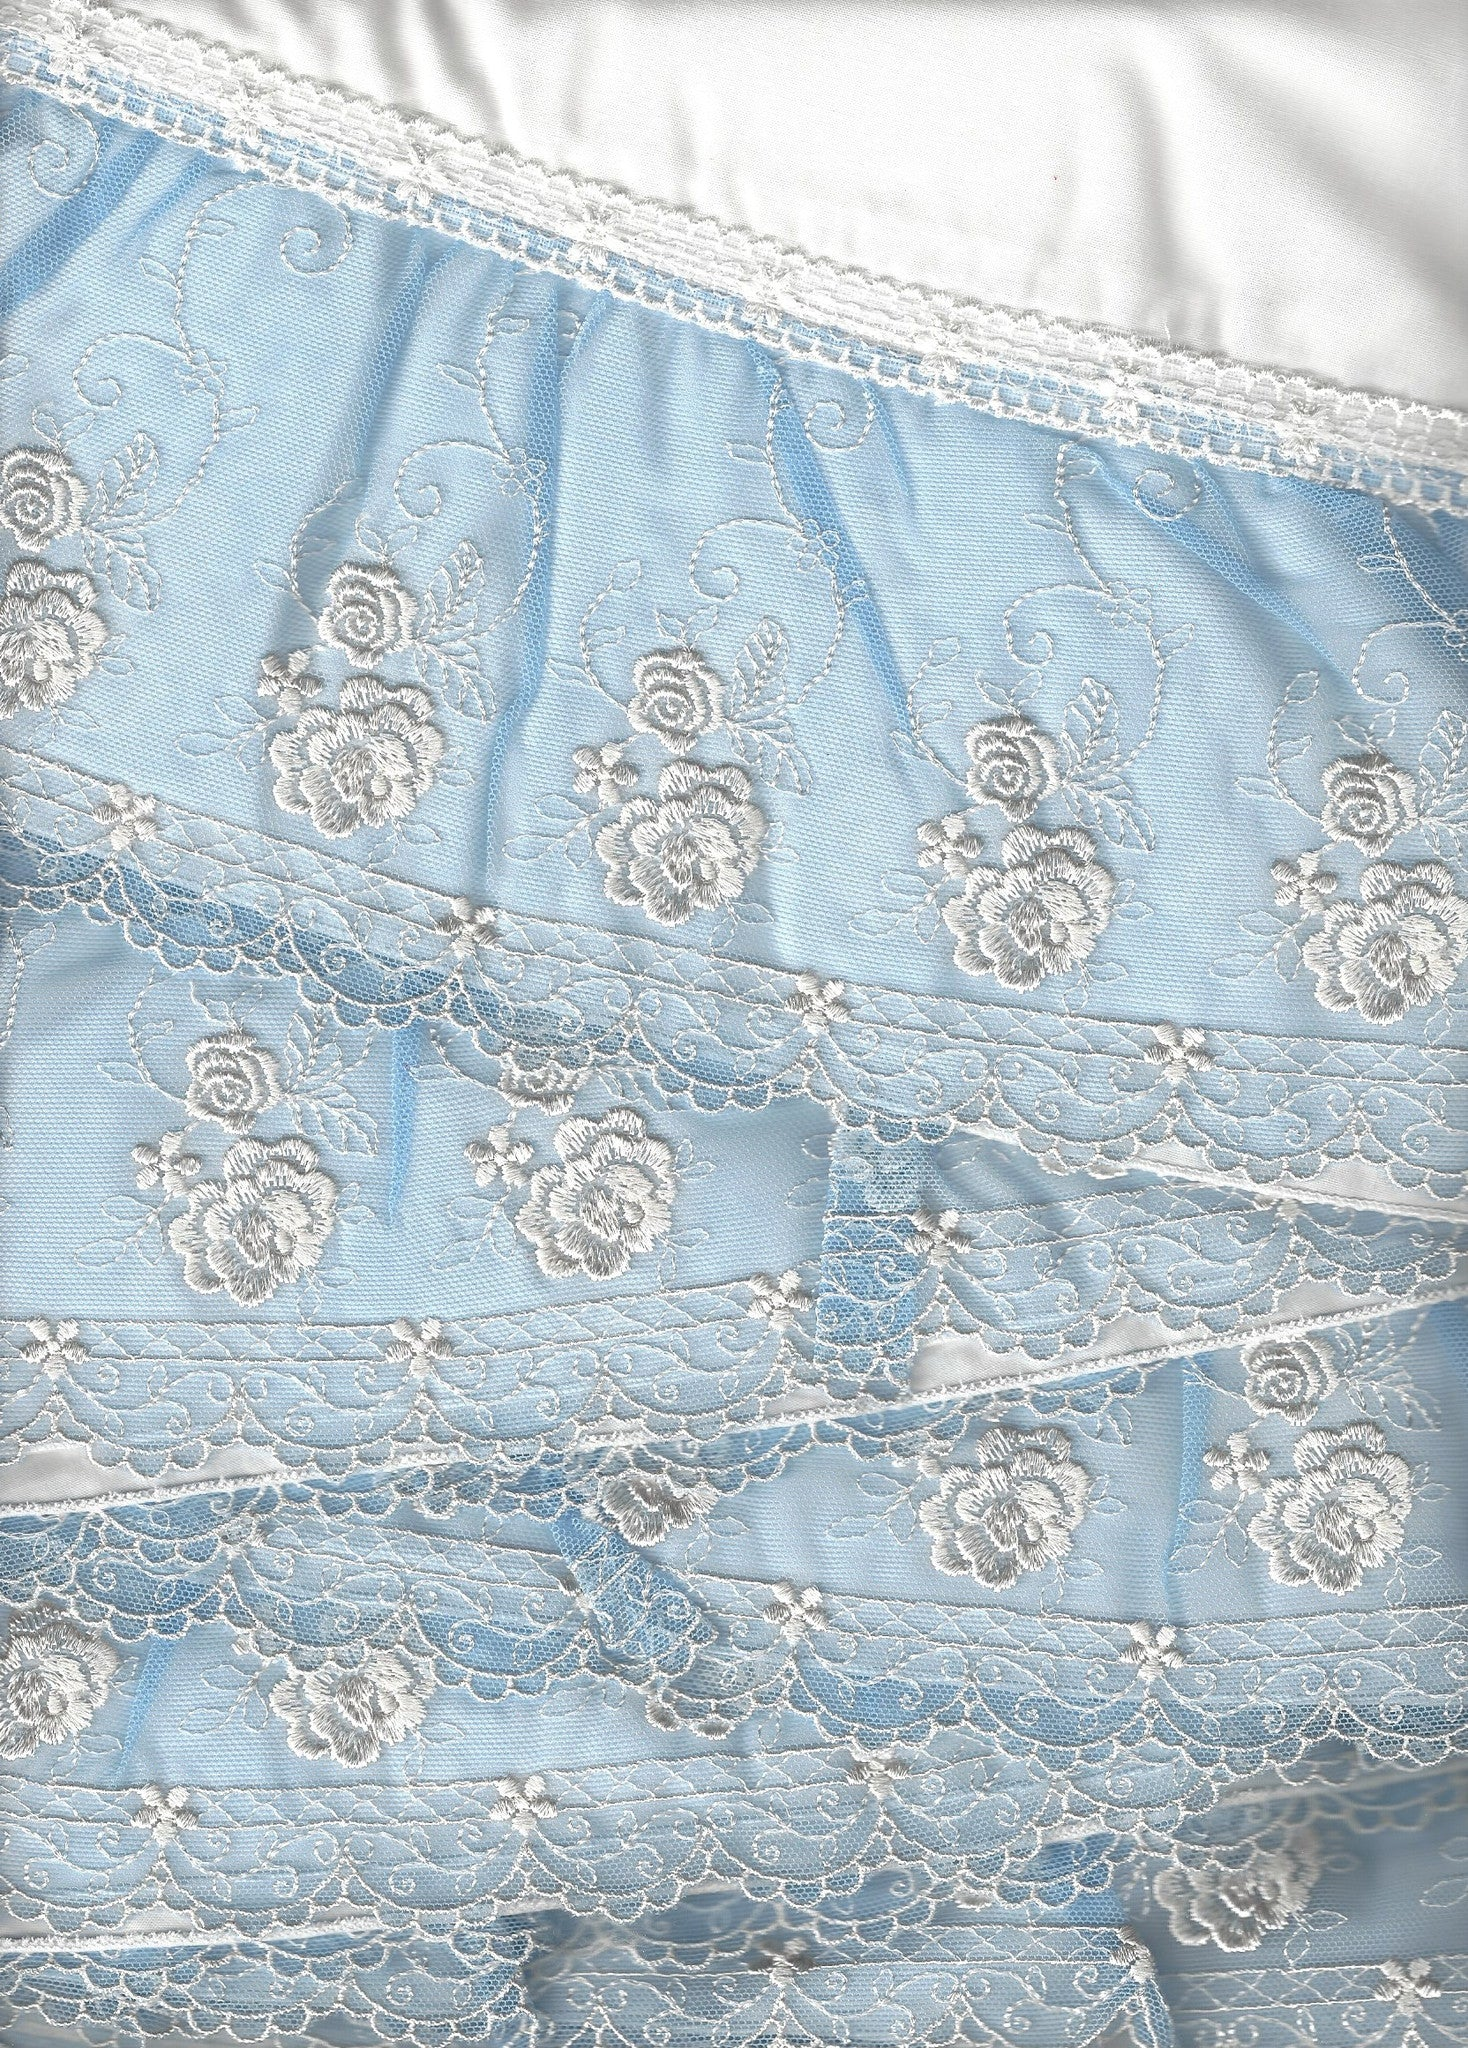 Prayer Clothes $47 Blue Lace, Clothing - Daybreak International Bookstore, Daybreak Press Global Bookshop  - 1